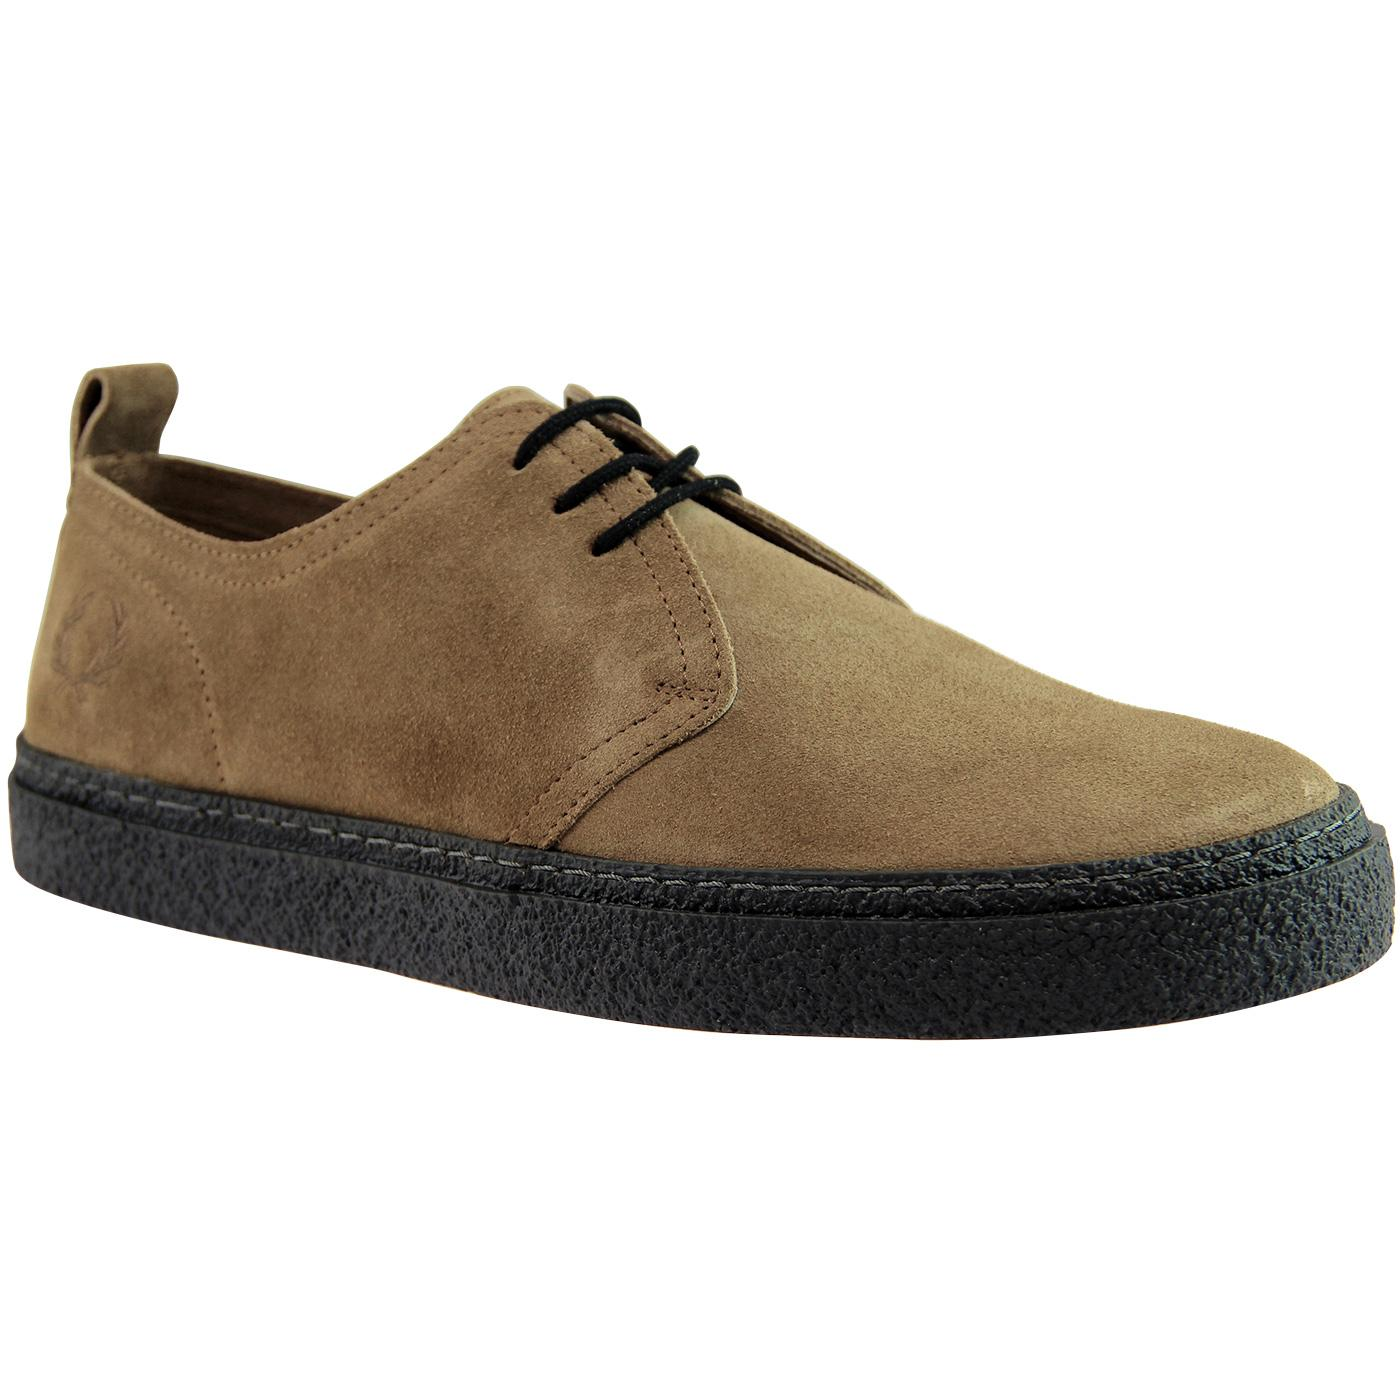 becdbb40480f FRED PERRY  Linden  Retro Mod Suede Shoes in Almond